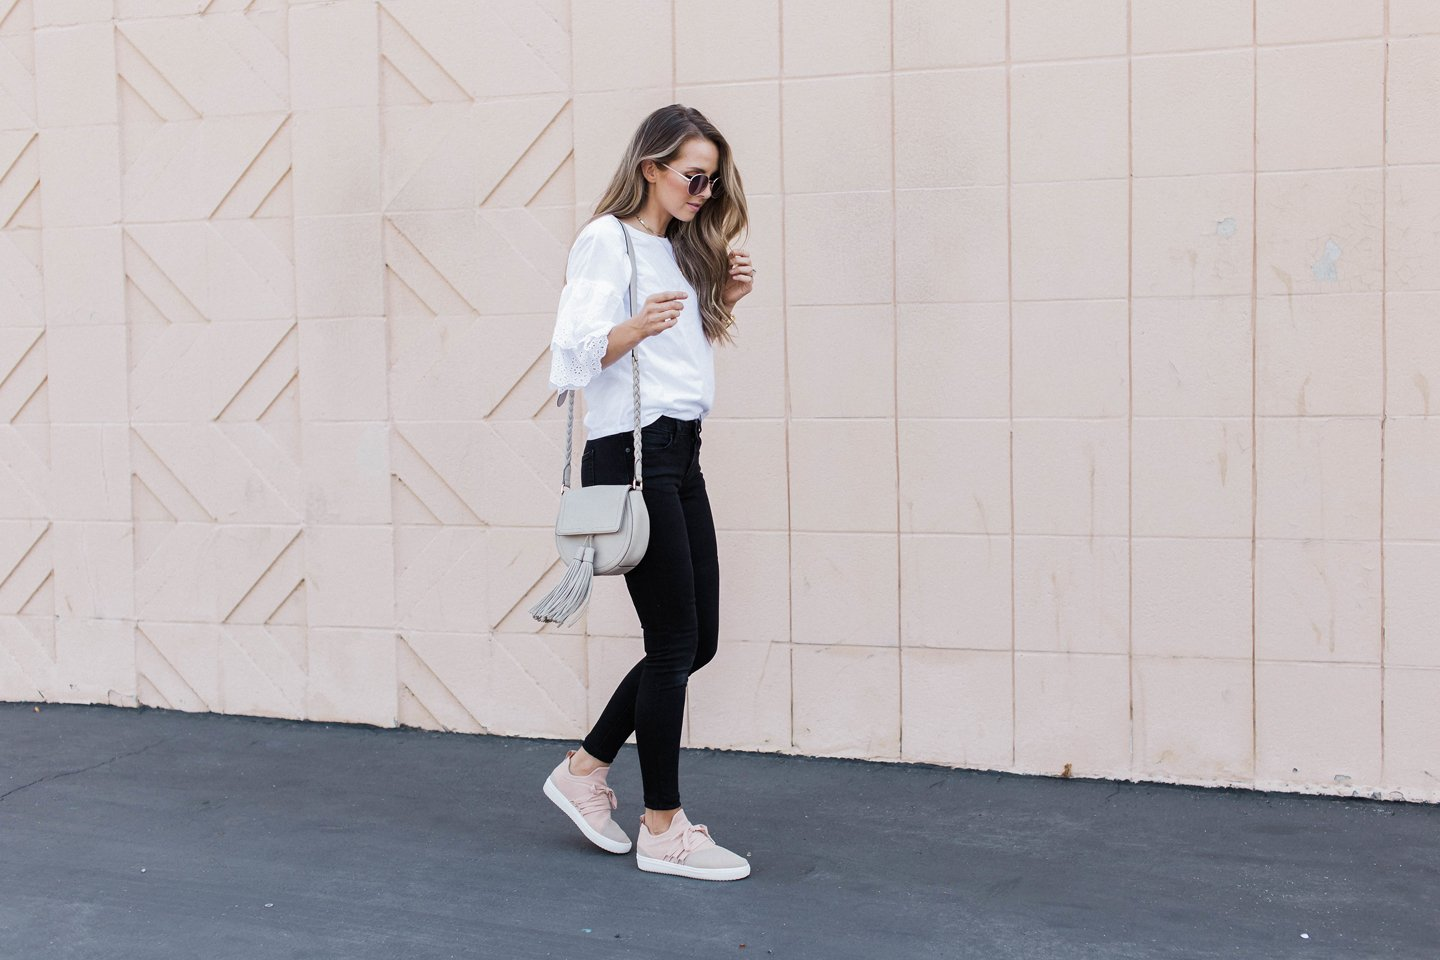 try these tips for wearing sneakers with an everyday outfit